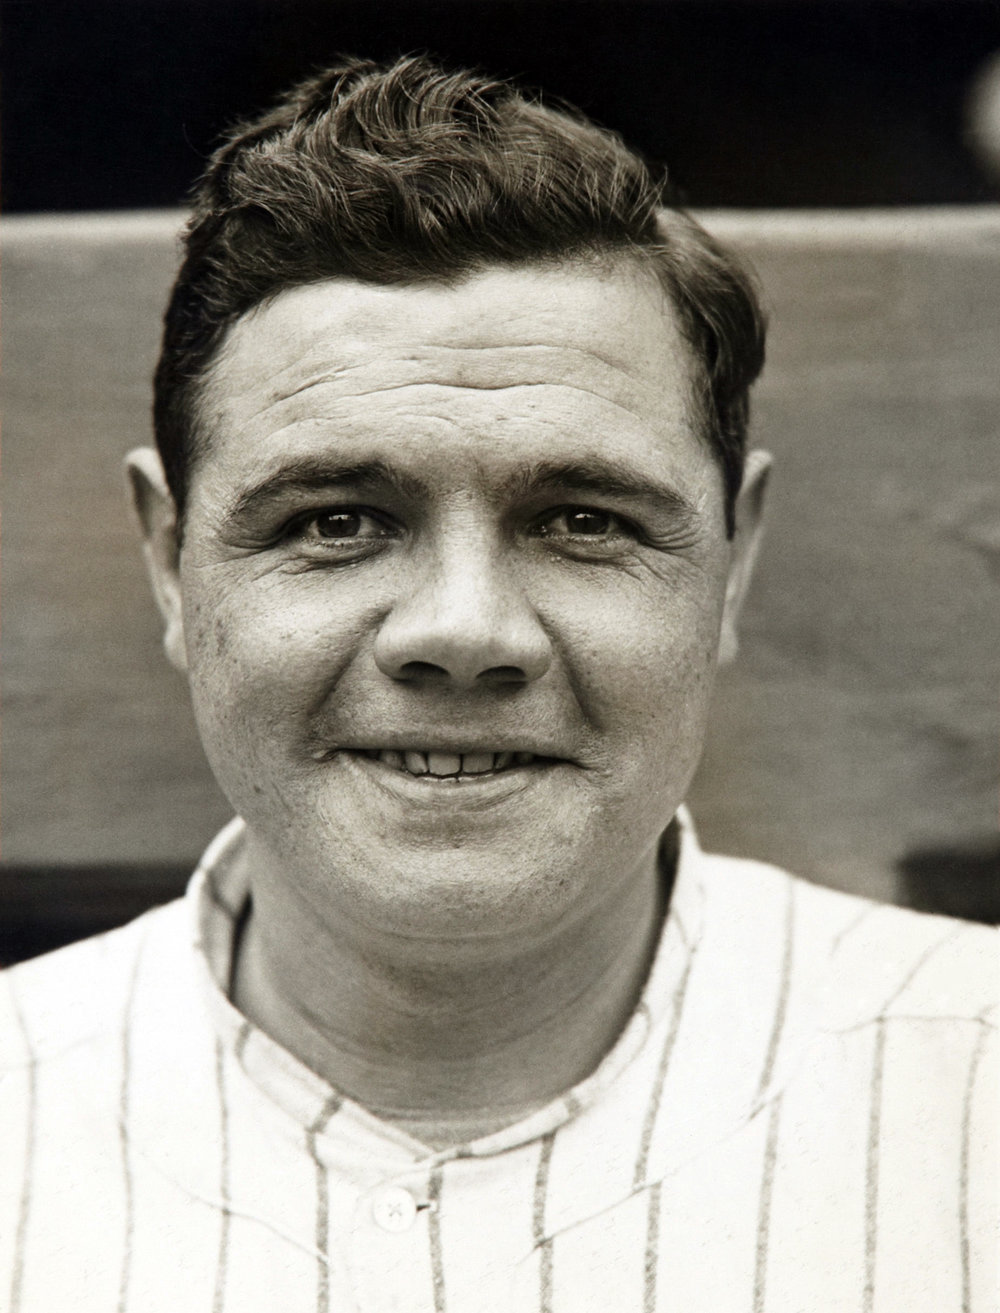 Many people don't know that Babe Ruth had severe amblyopia.